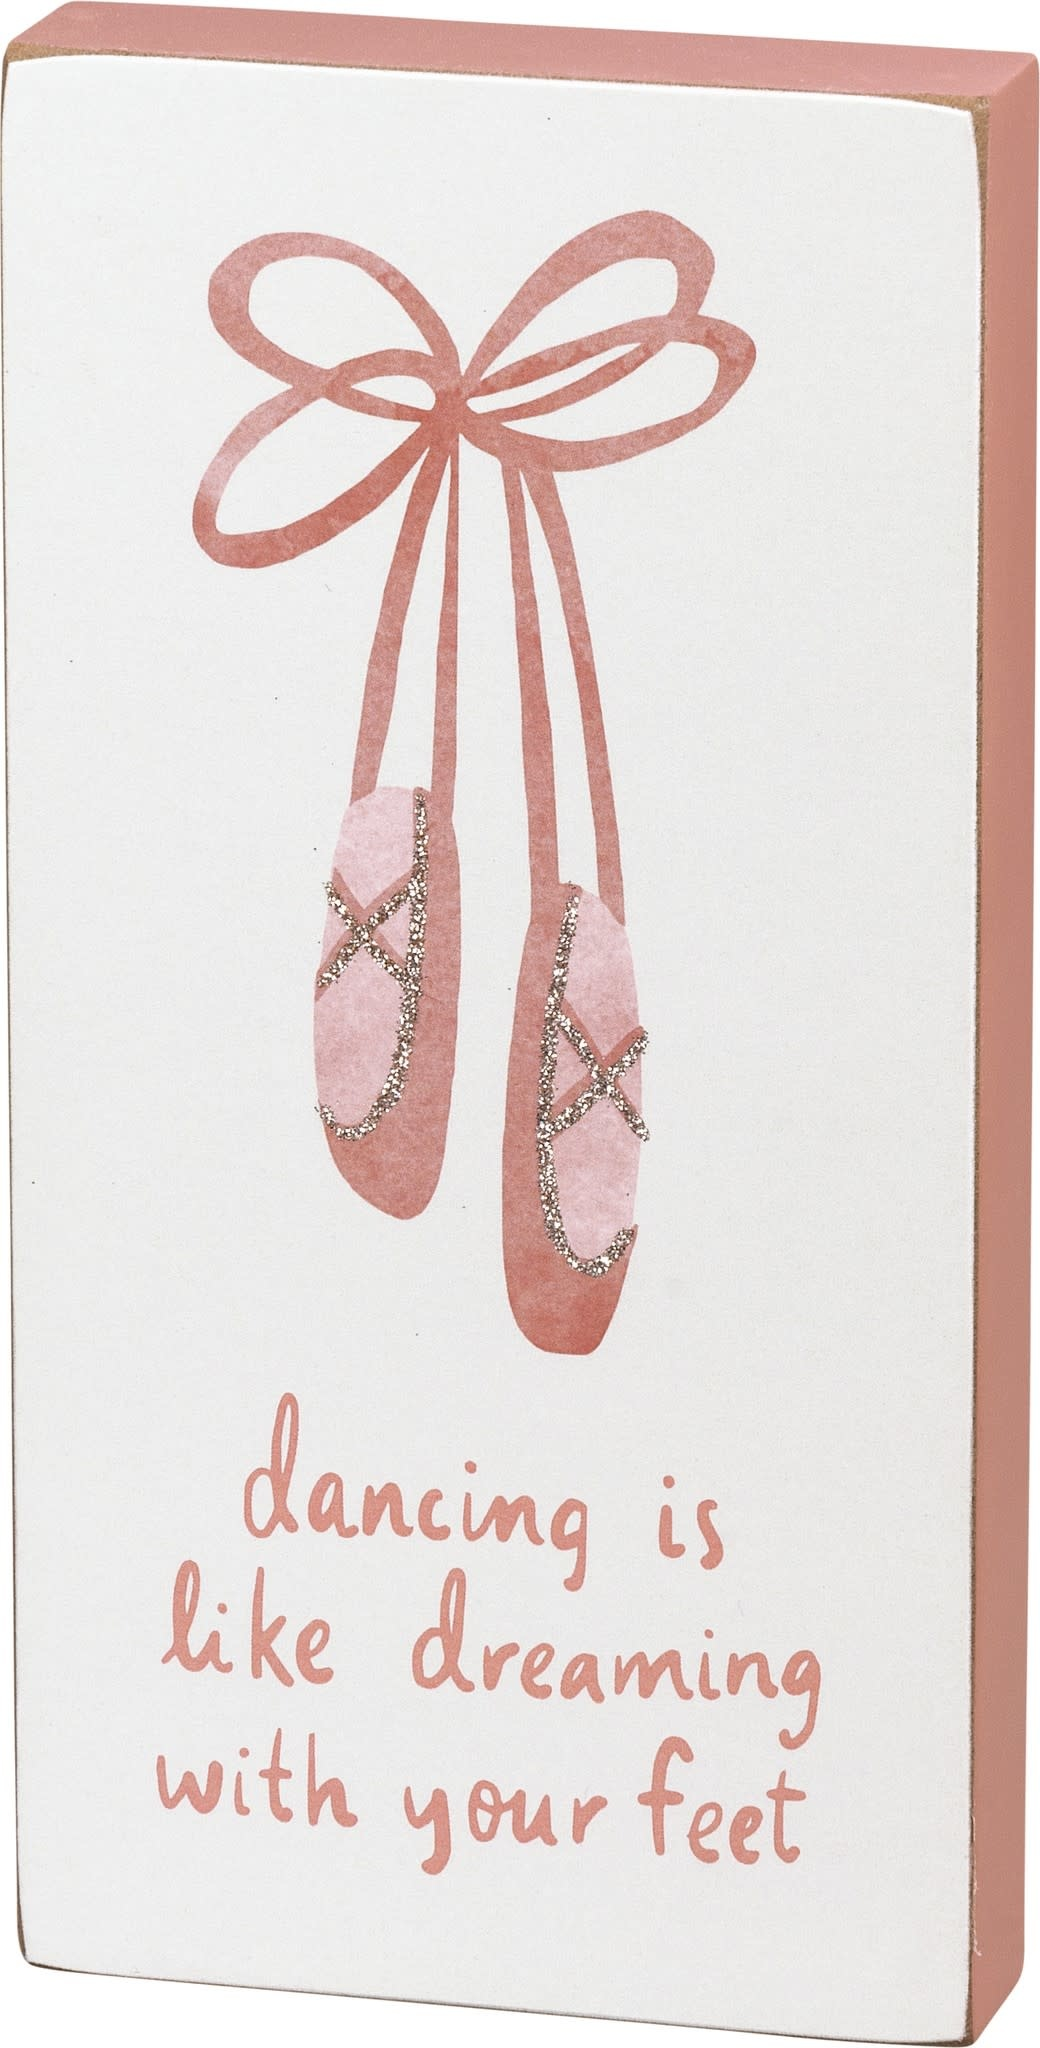 """candym Plaque """"Dancing is Like Dreaming with your feet"""", P104404, Rose Ballet, 4"""" x 8"""" x 1"""""""